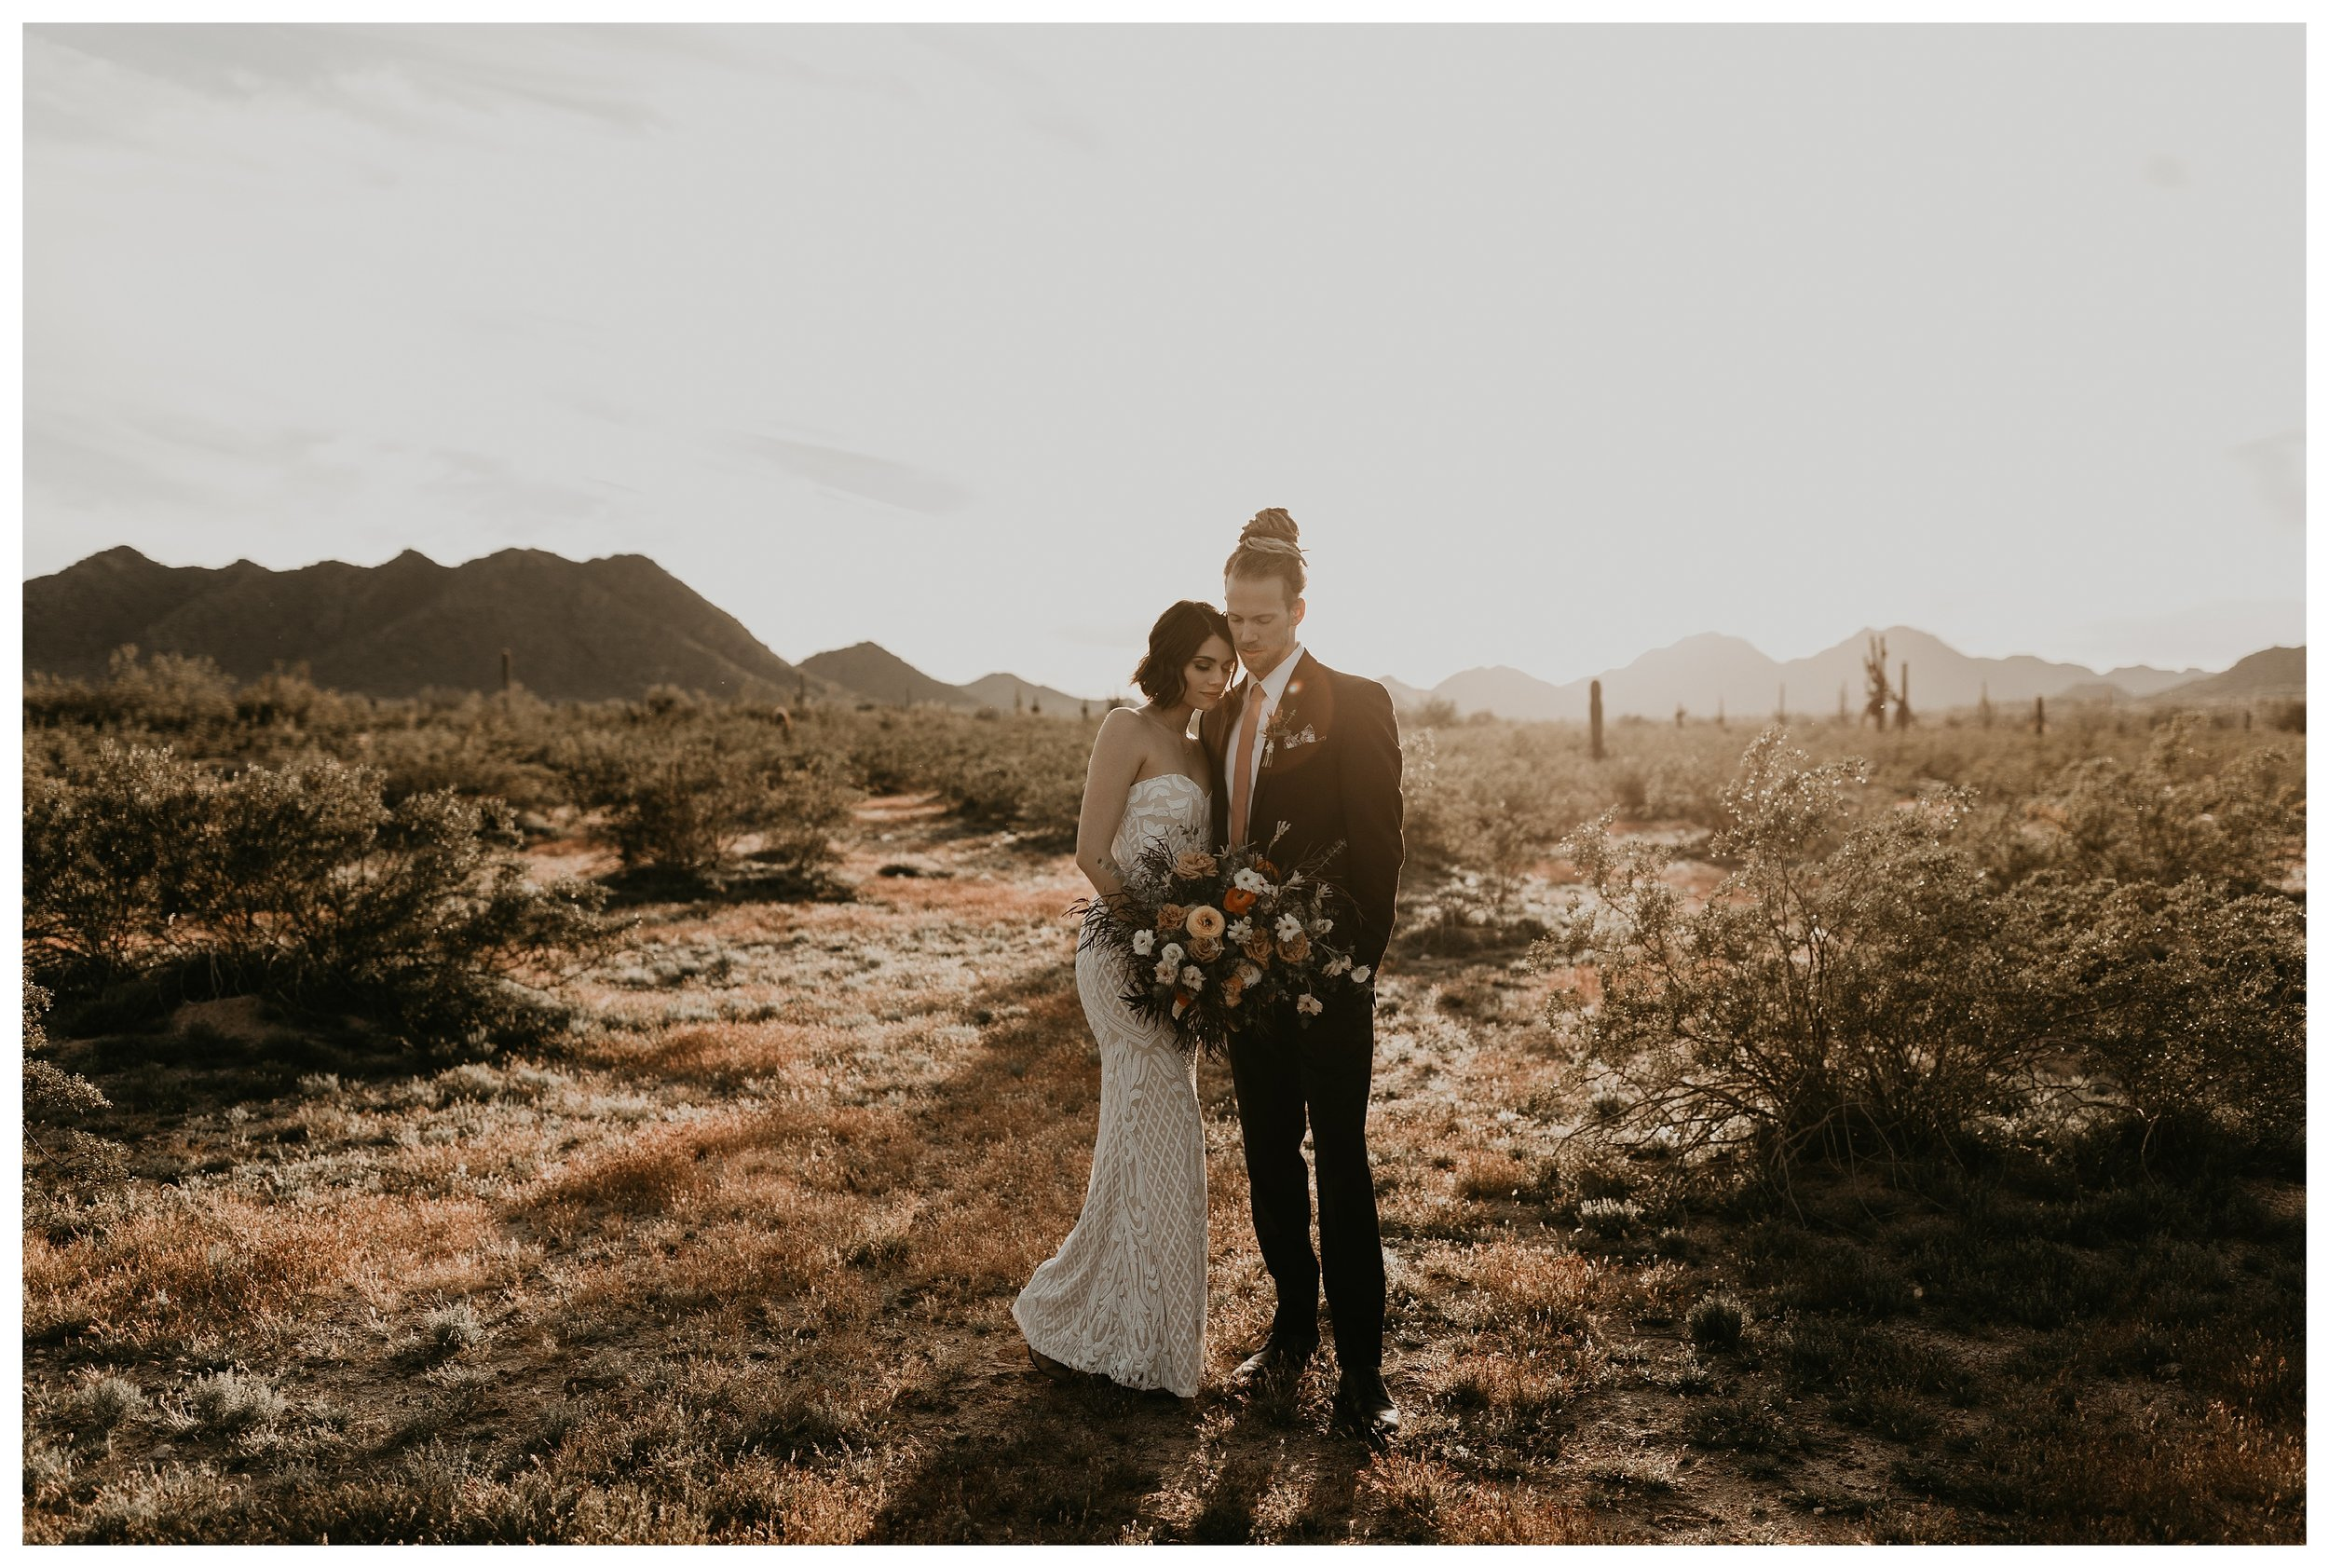 Golden hour bride and groom photos in the Arizona desert with a sequin strapless dress